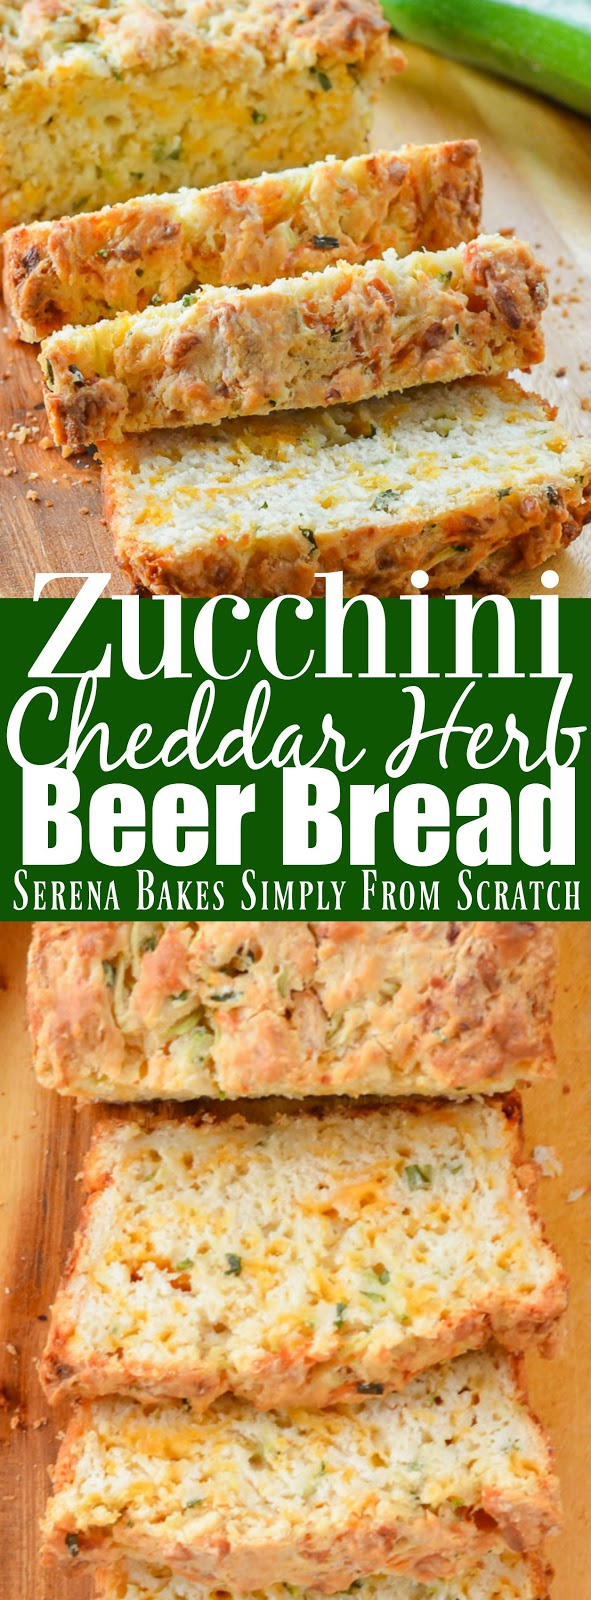 Zucchini Cheddar Cheese Herb Beer Bread from Serena Bakes Simply From Scratch.